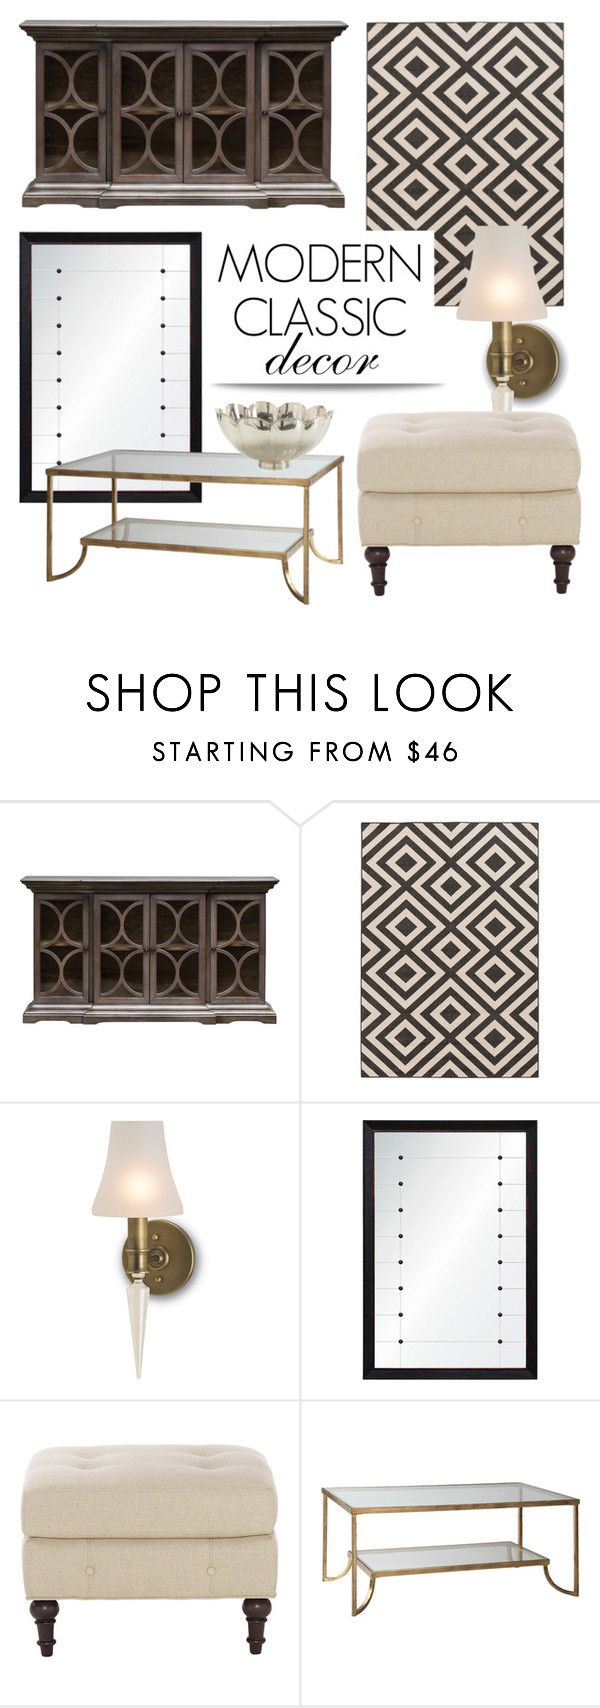 """Modern Classic Decor"" by kathykuohome ❤ liked on Polyvore featuring interior, interiors, interior design, home, home decor, interior decorating, modern, livingroom, Home and homedecor"